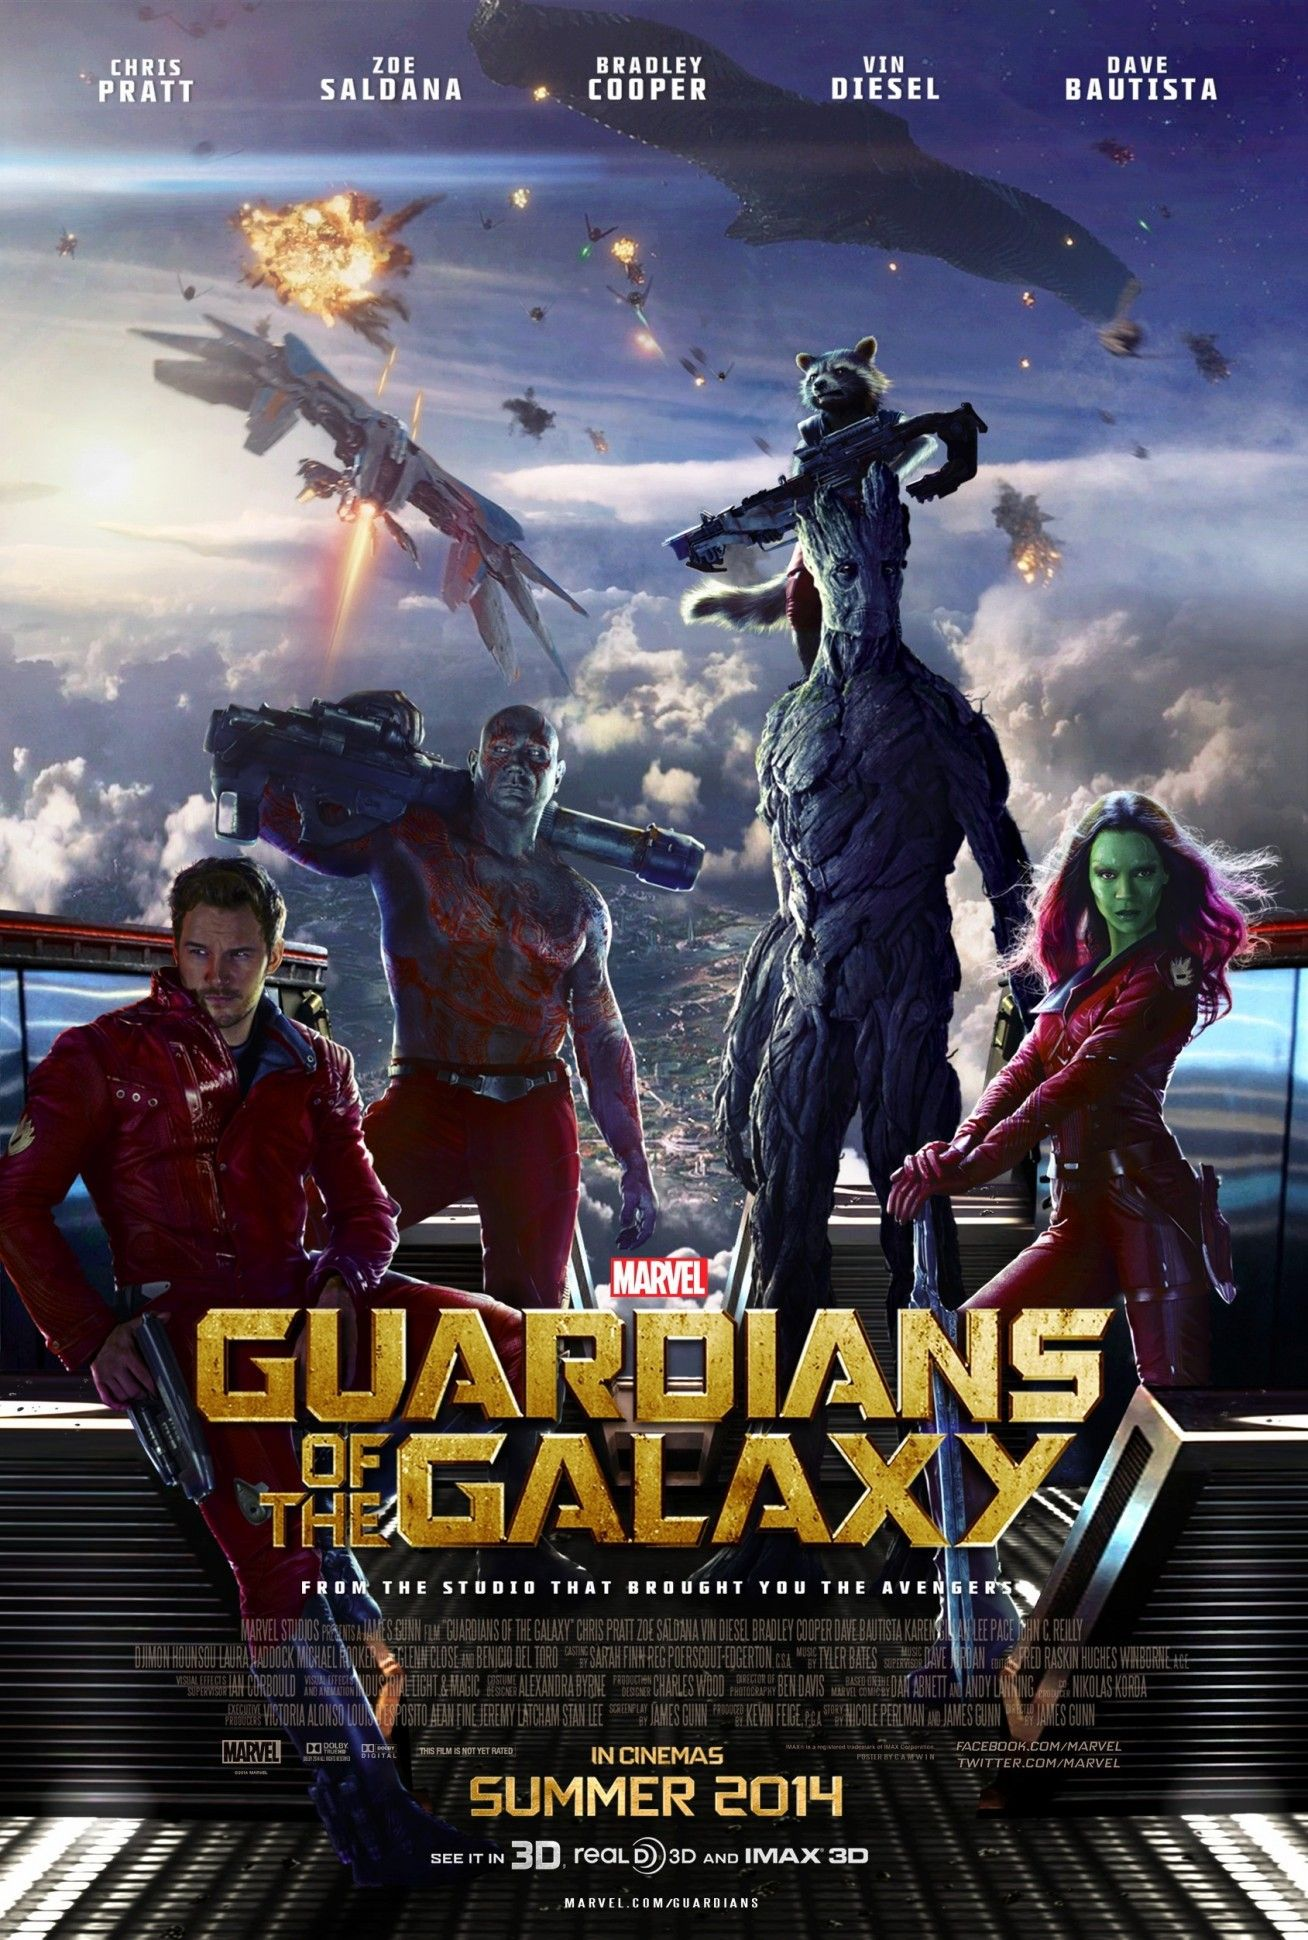 Guardianes De La Galaxia 2014 Peliculas Online Yaske To Galaxy Movie Guardians Of The Galaxy Marvel Movie Posters Watch the best full movies from now for free. pinterest